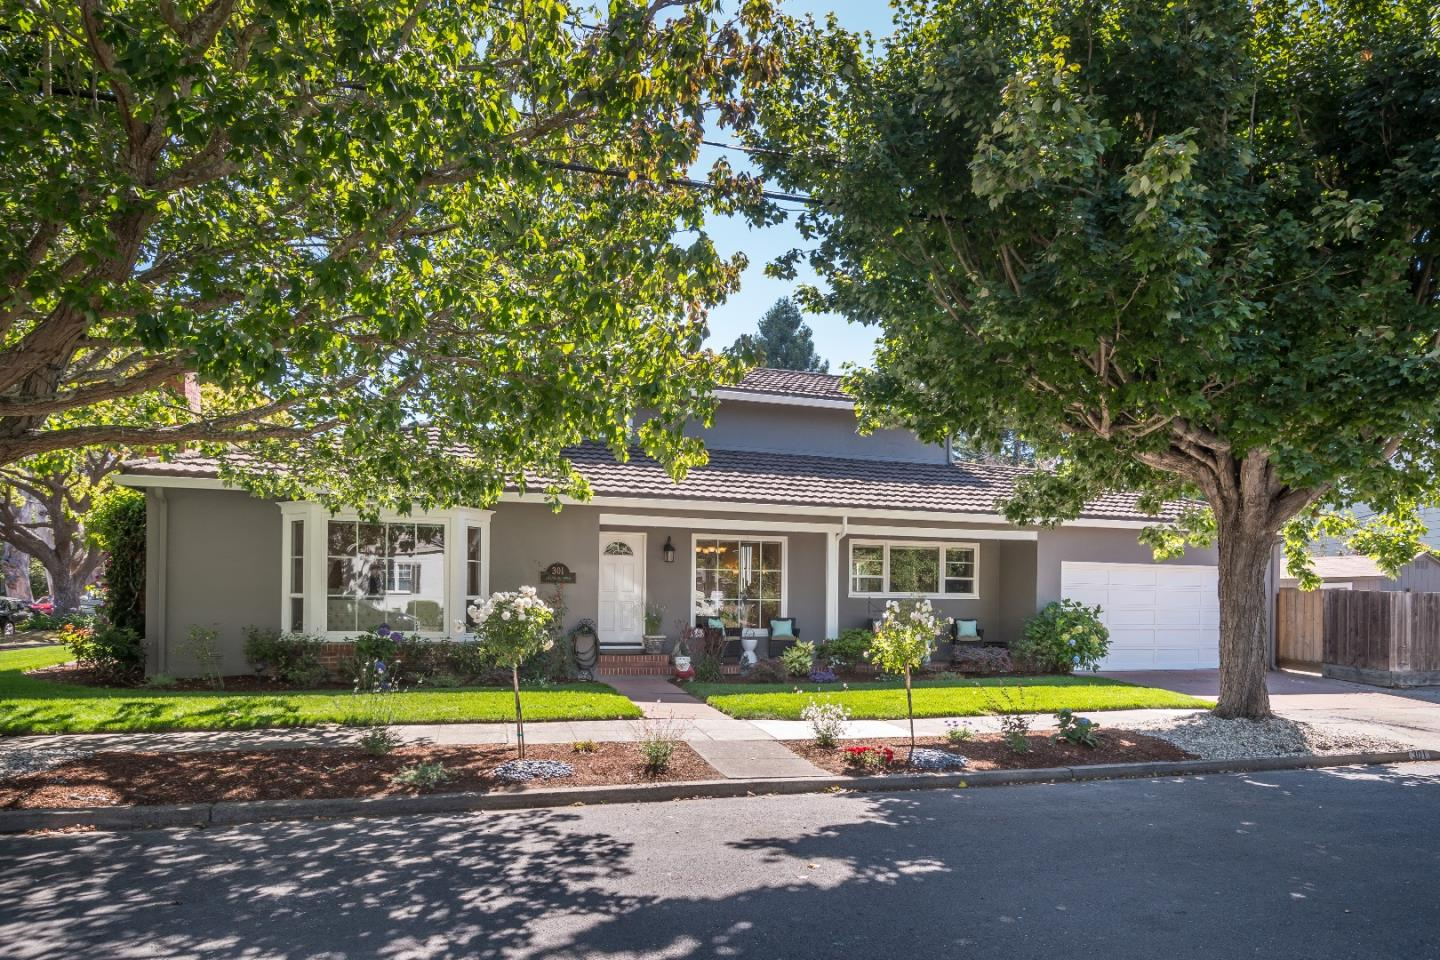 Single Family Home for Sale at 301 Channing Road Burlingame, California 94010 United States